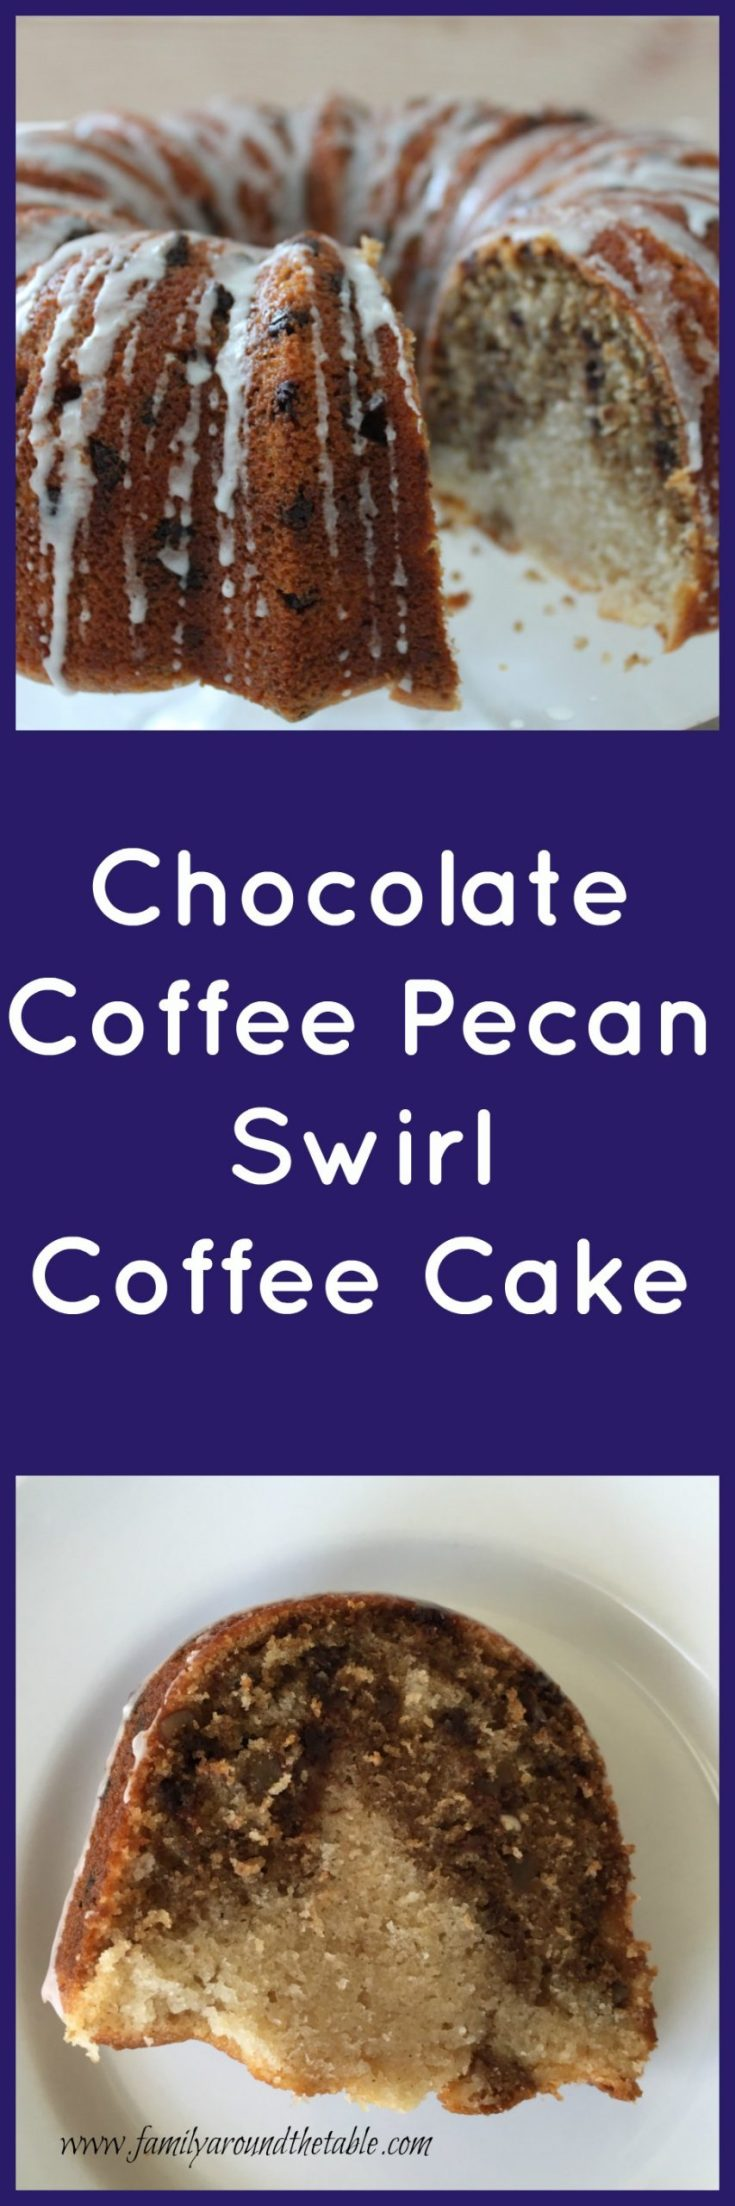 Start the day with a slice of chocolate coffee pecan swirl coffee cake and a cup coffee.